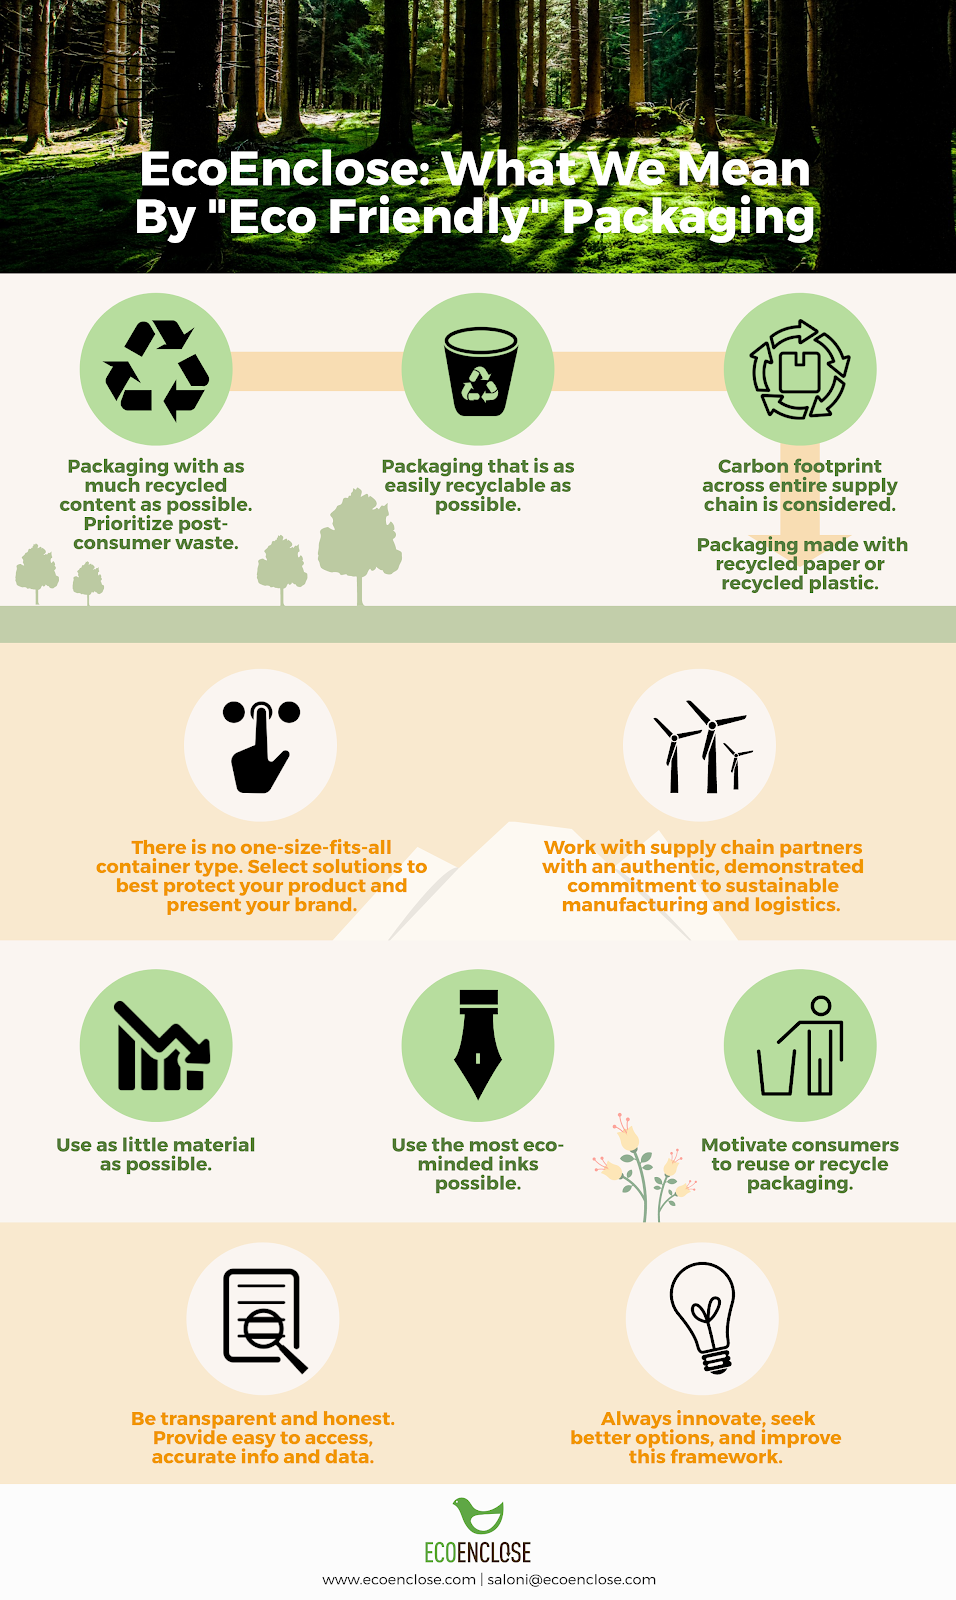 EcoEnclose's Sustainable Packaging Framework